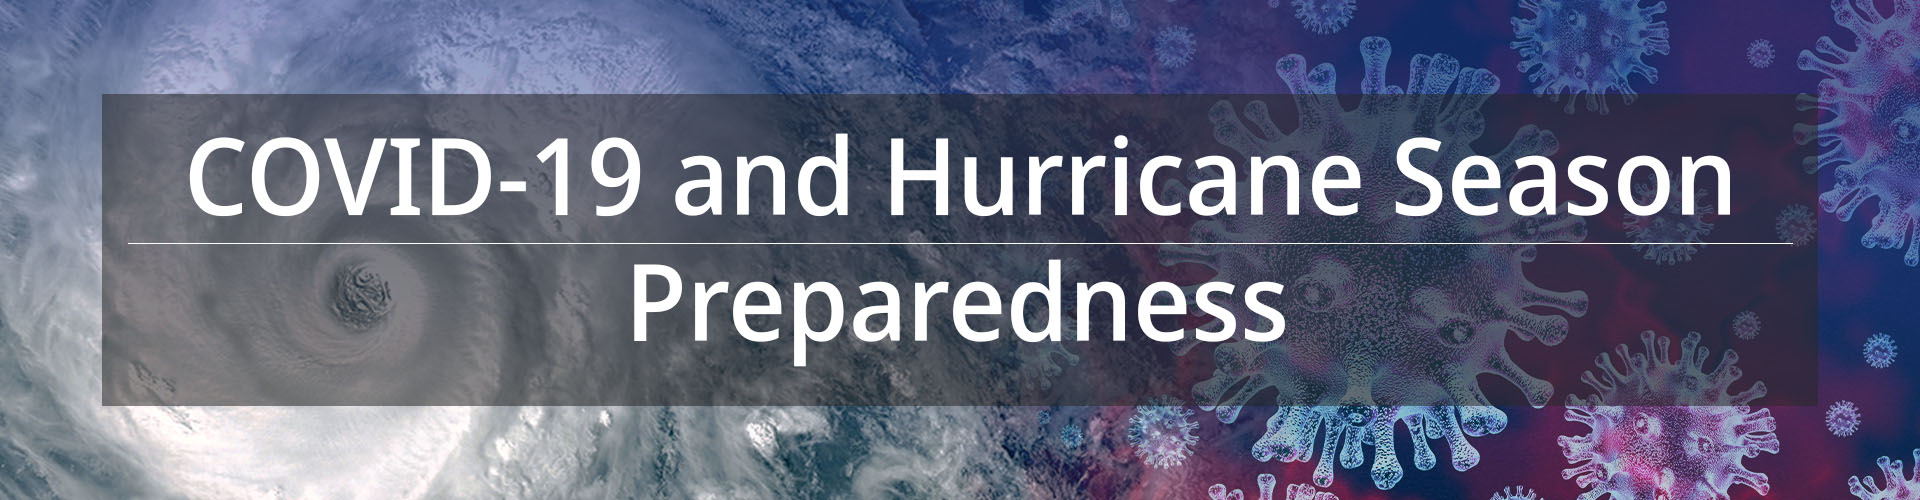 COVID-19 and Hurricane Season Preparedness